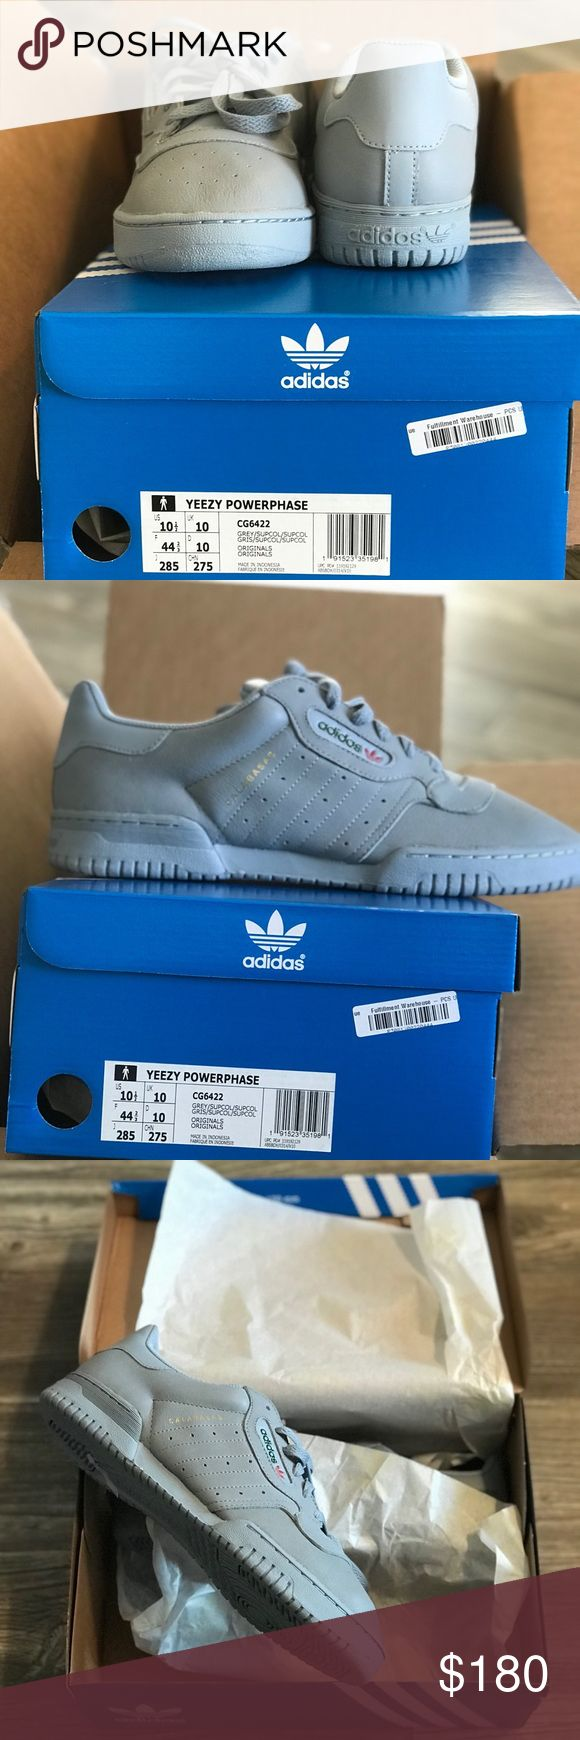 adidas YEEZY Powerphase Grey Sz: 10.5 Purchased on release date Never worn Purchased from Yeezysupply.com Message me for more details adidas Shoes Sneakers